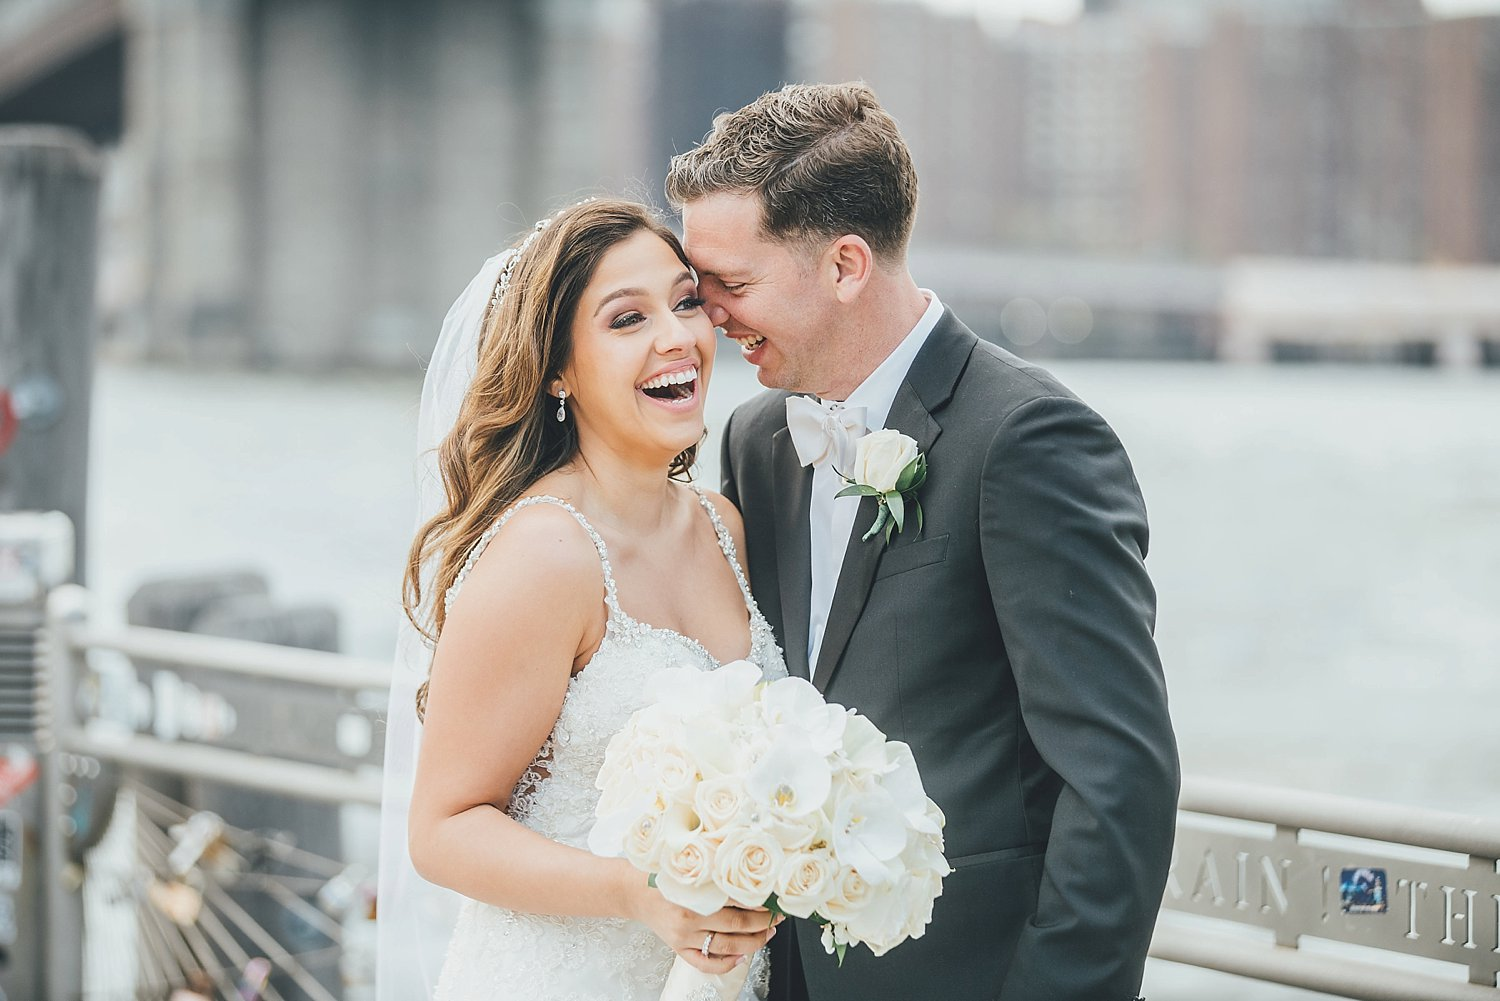 nyc-wedding-photography-nj-tri-state-cinematography-intothestory-by-moo-jae_0229.jpg